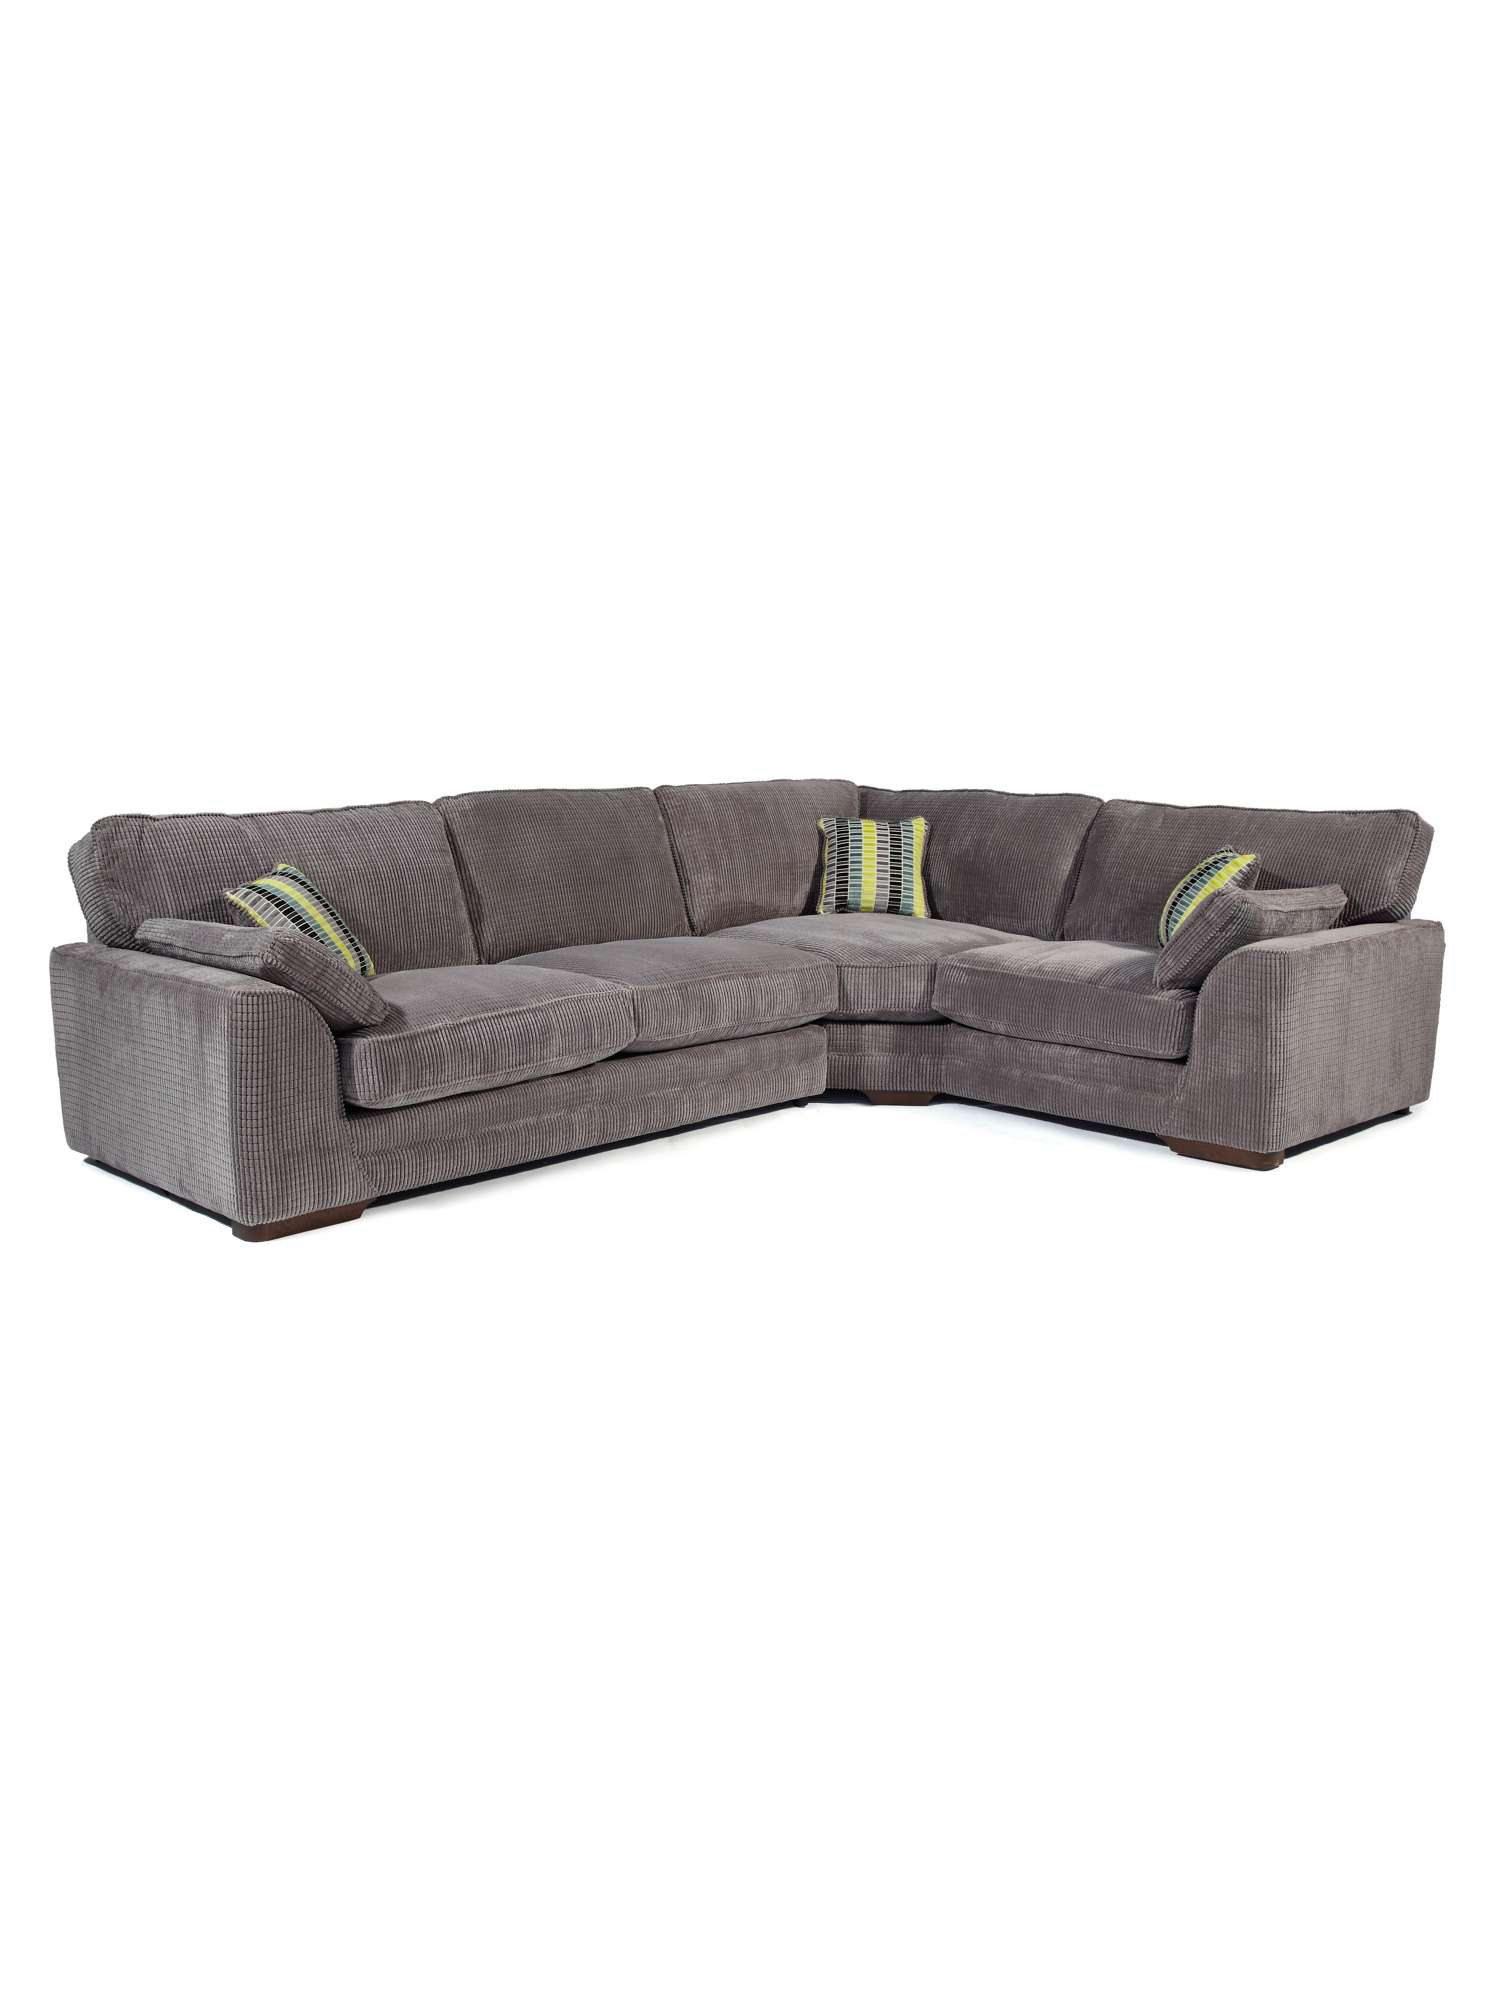 House of fraser linea montana corner sofa for Housse of fraser